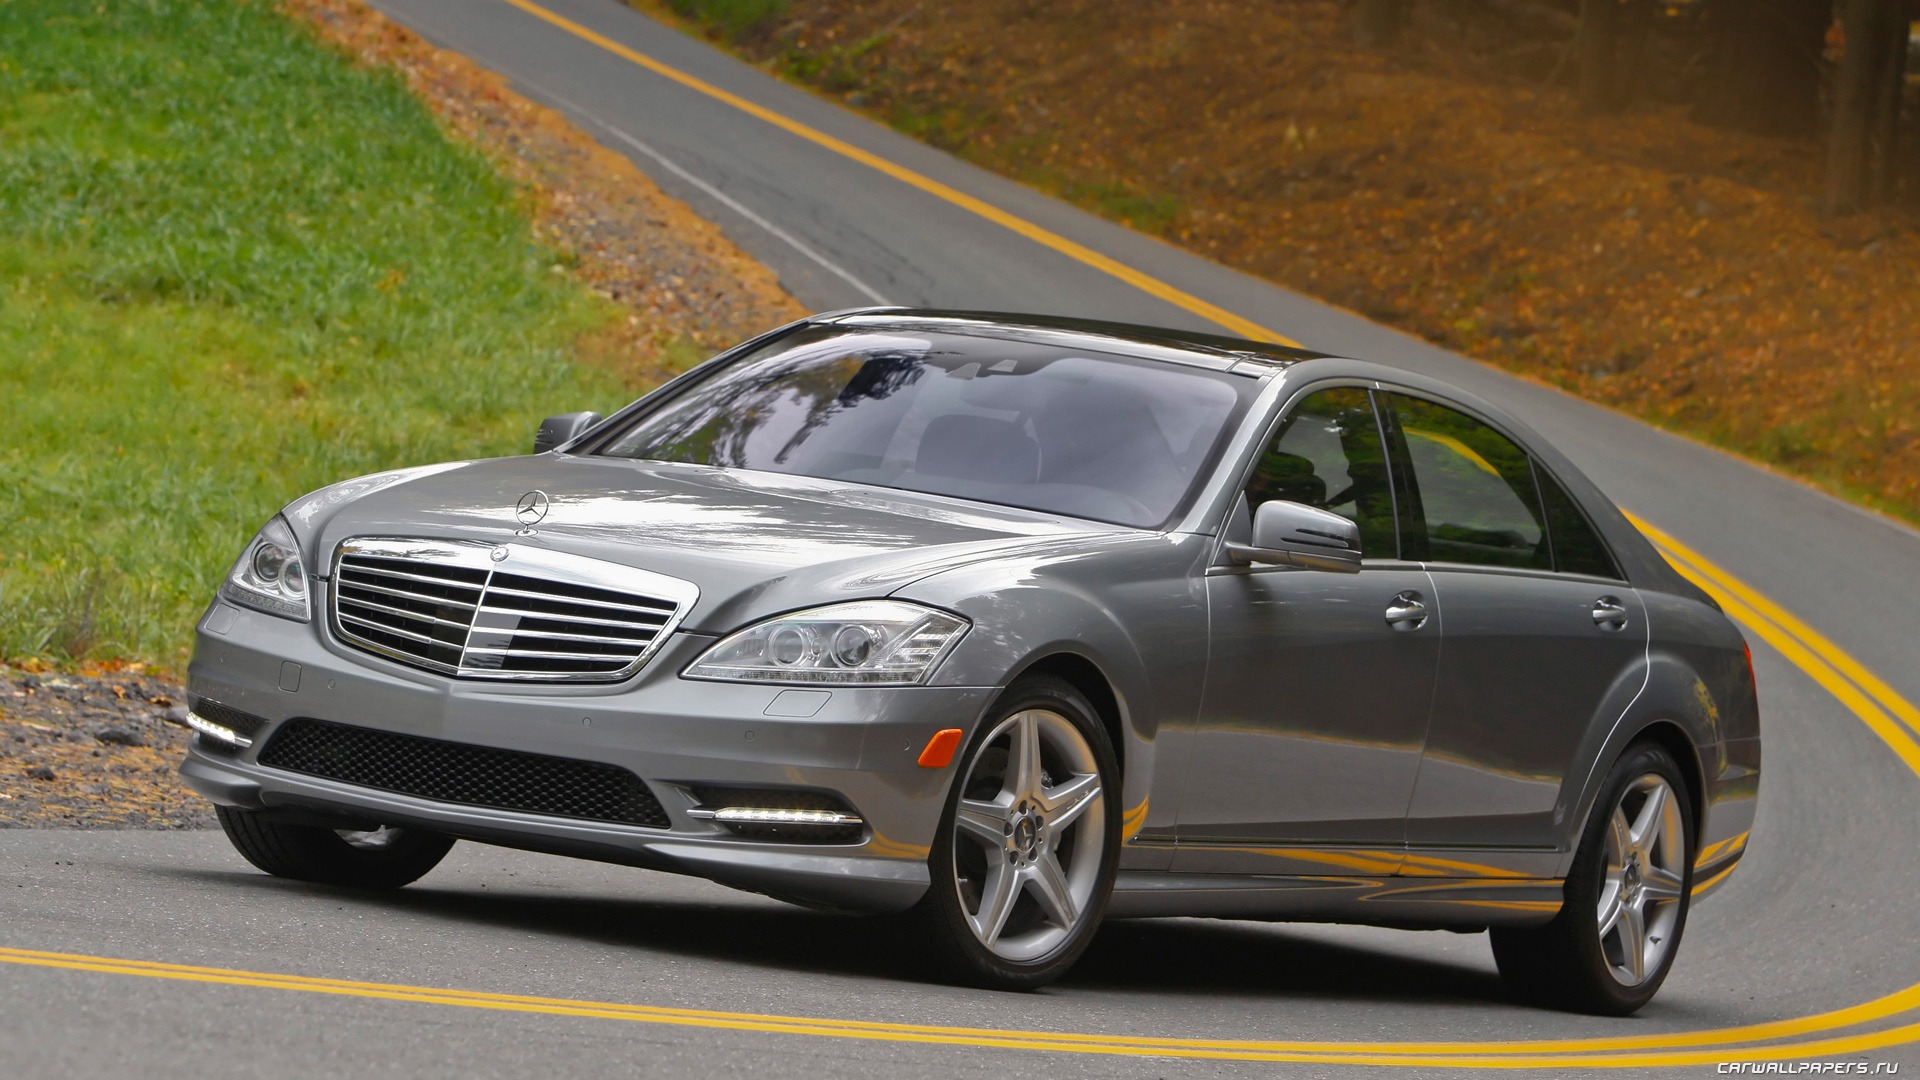 Mercedes benz s550 2010 hd wallpaper 15 1920x1080 for Mercedes benz s550 2010